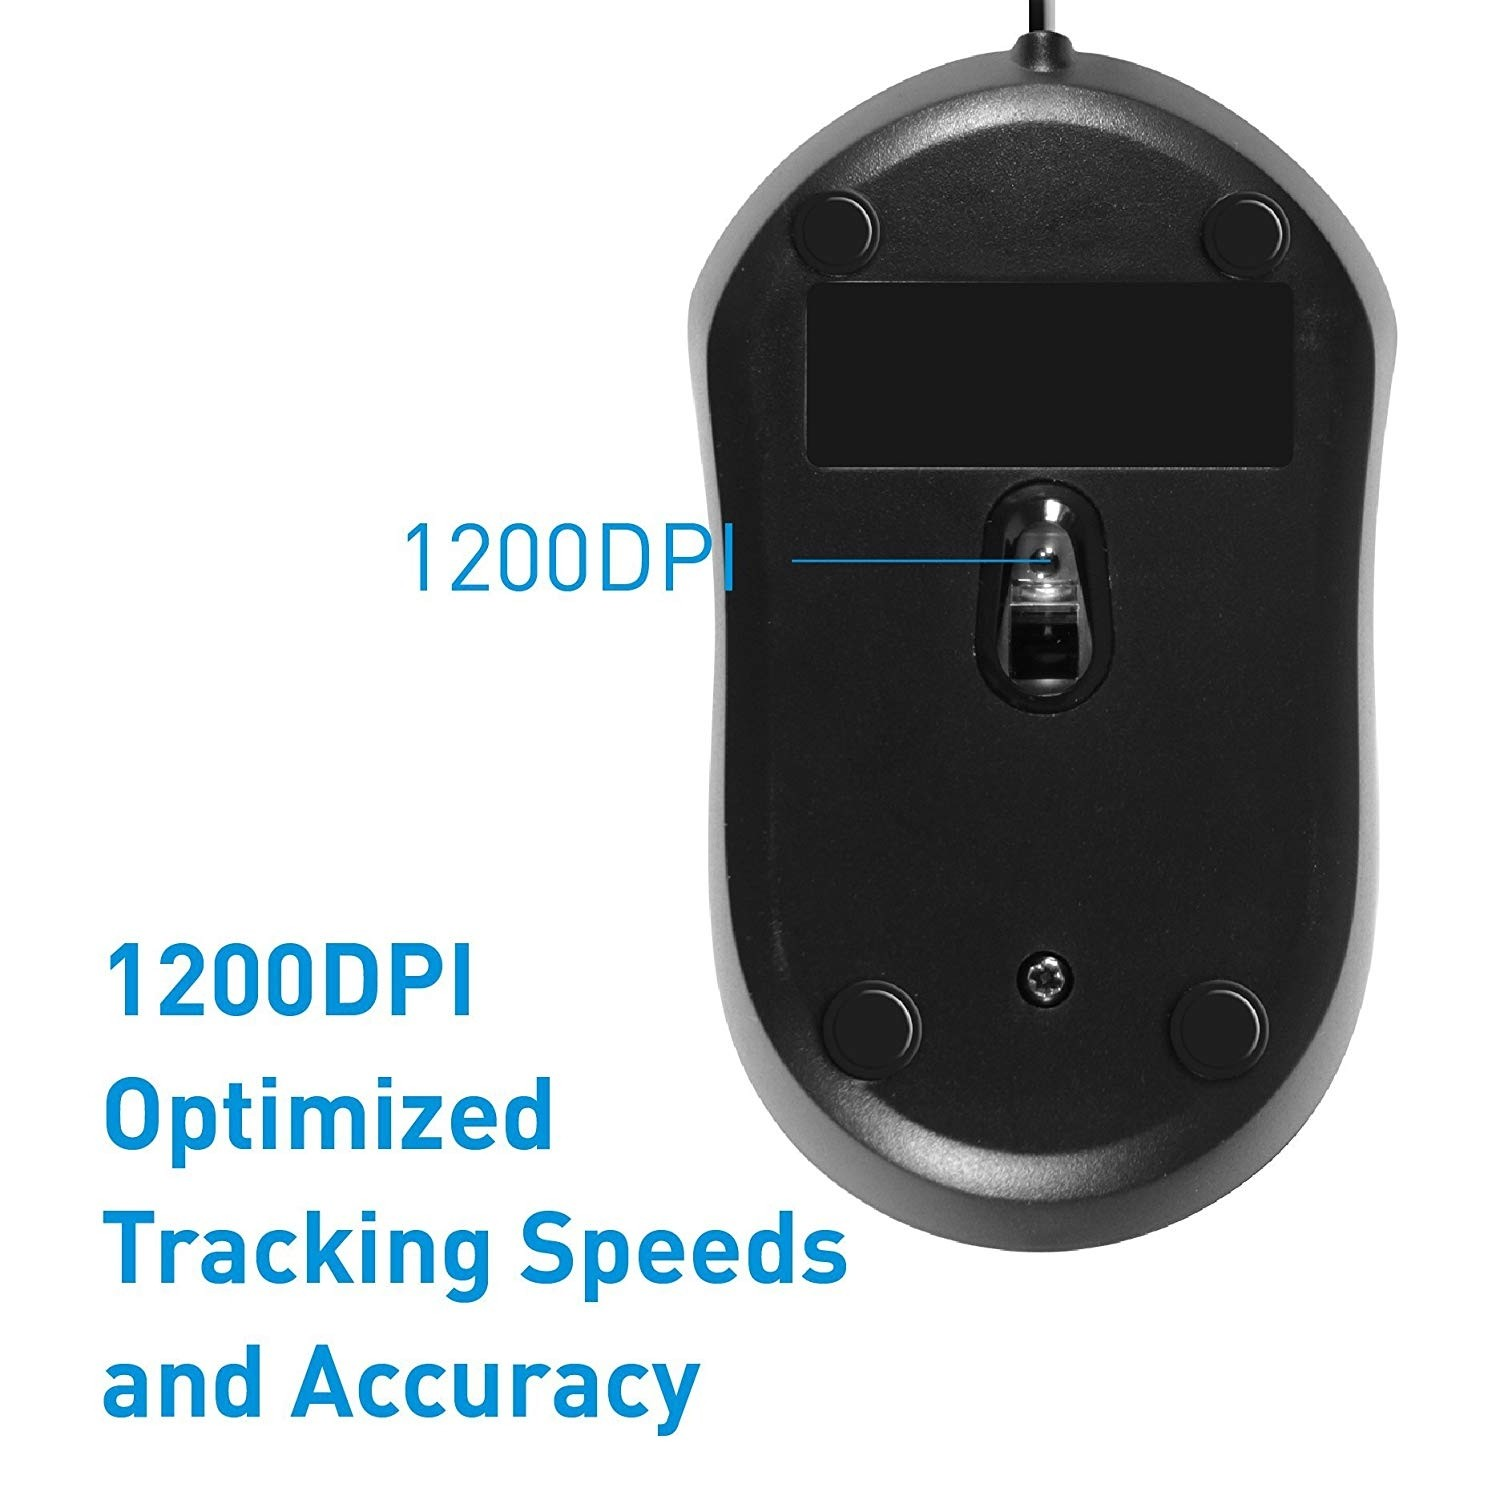 Macally USB Wired Computer Mouse with 3 Button, Scroll Wheel, 5 Foot Long Cord, Compatible with Windows PC, Apple MacBook Pro/Air, iMac, Mac Mini, Laptops - Black, QMOUSEB